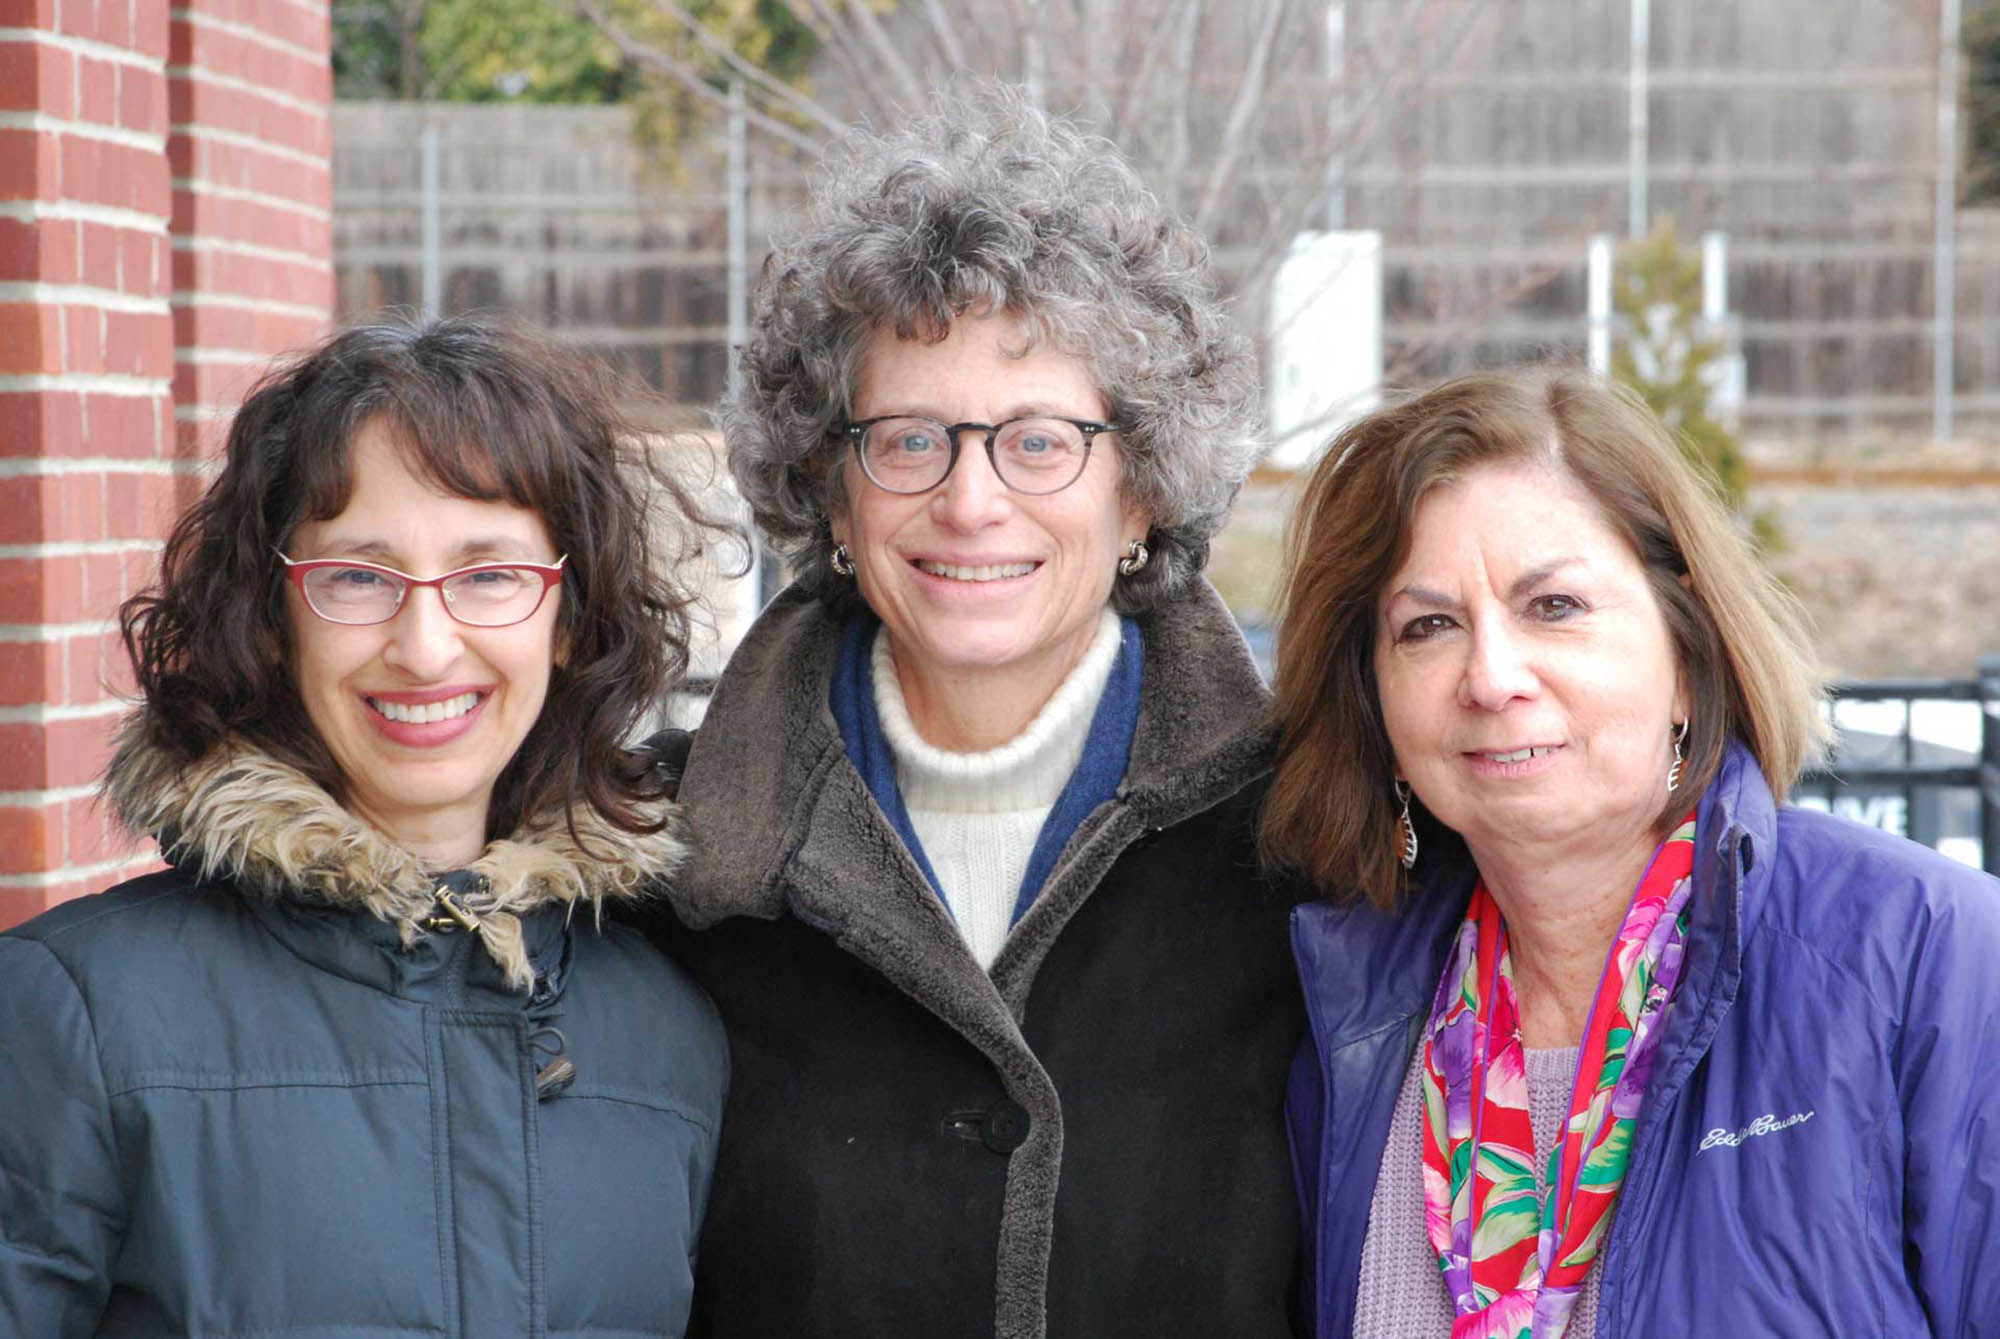 League of Women Voters of Delaware County president Barbara Amstutz (center) is joined by Reisa Mukamal (left) and Carol Briselli (right) of Congregation Beth Israel.